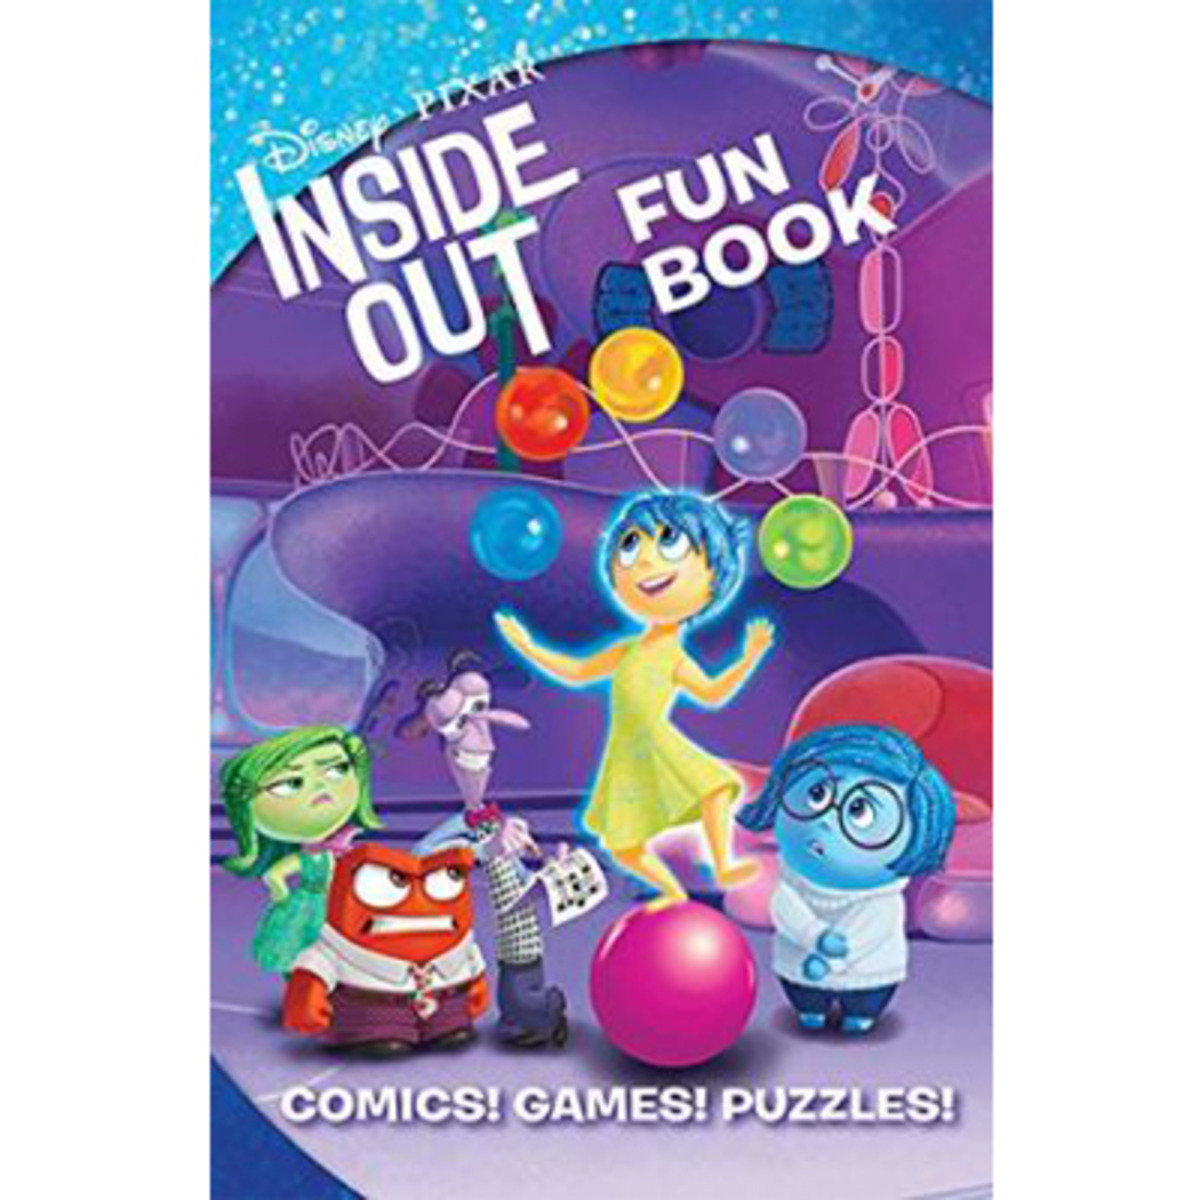 Disney*pixar's Inside Out Fun Book